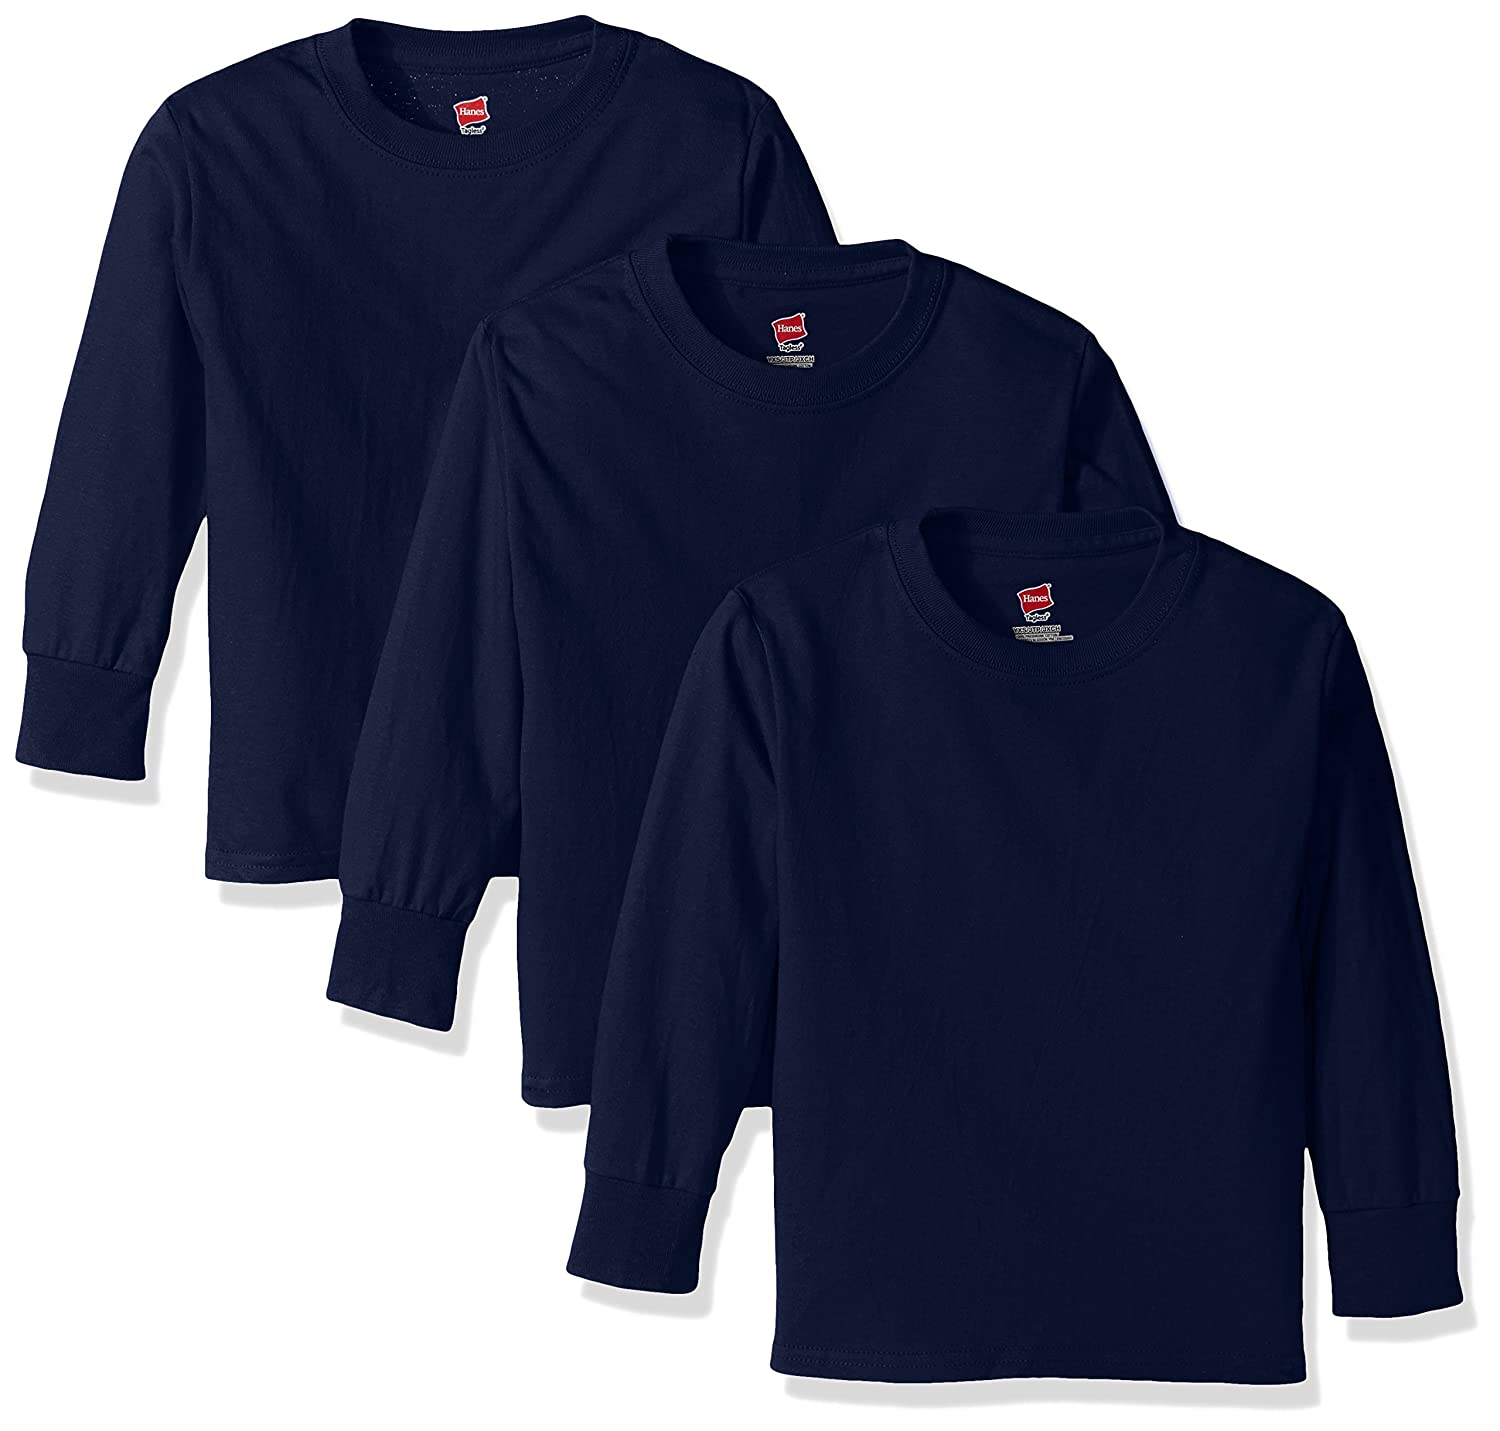 Hanes Big Boys' Tagless Long Sleeve Tee (Pack of 3) Hanes Branded Printwear O5546